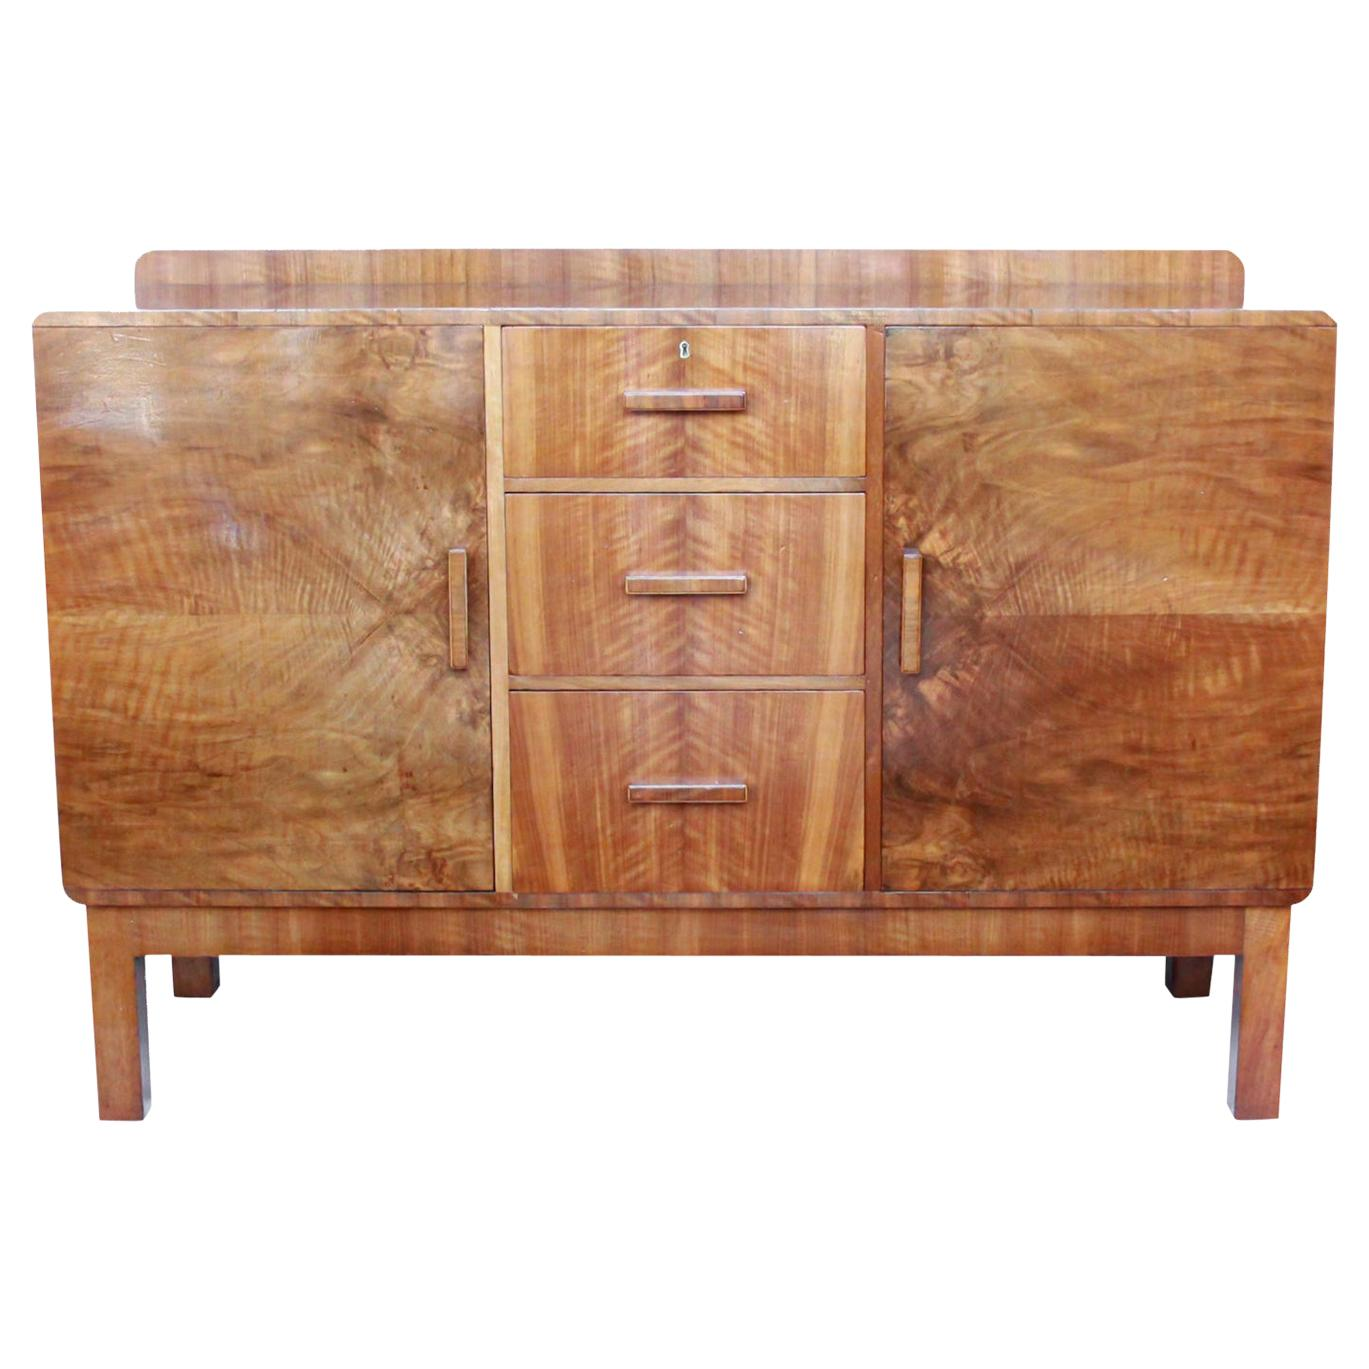 Art Deco Sideboard Burr and Straight Grain Walnut English Original 1930s